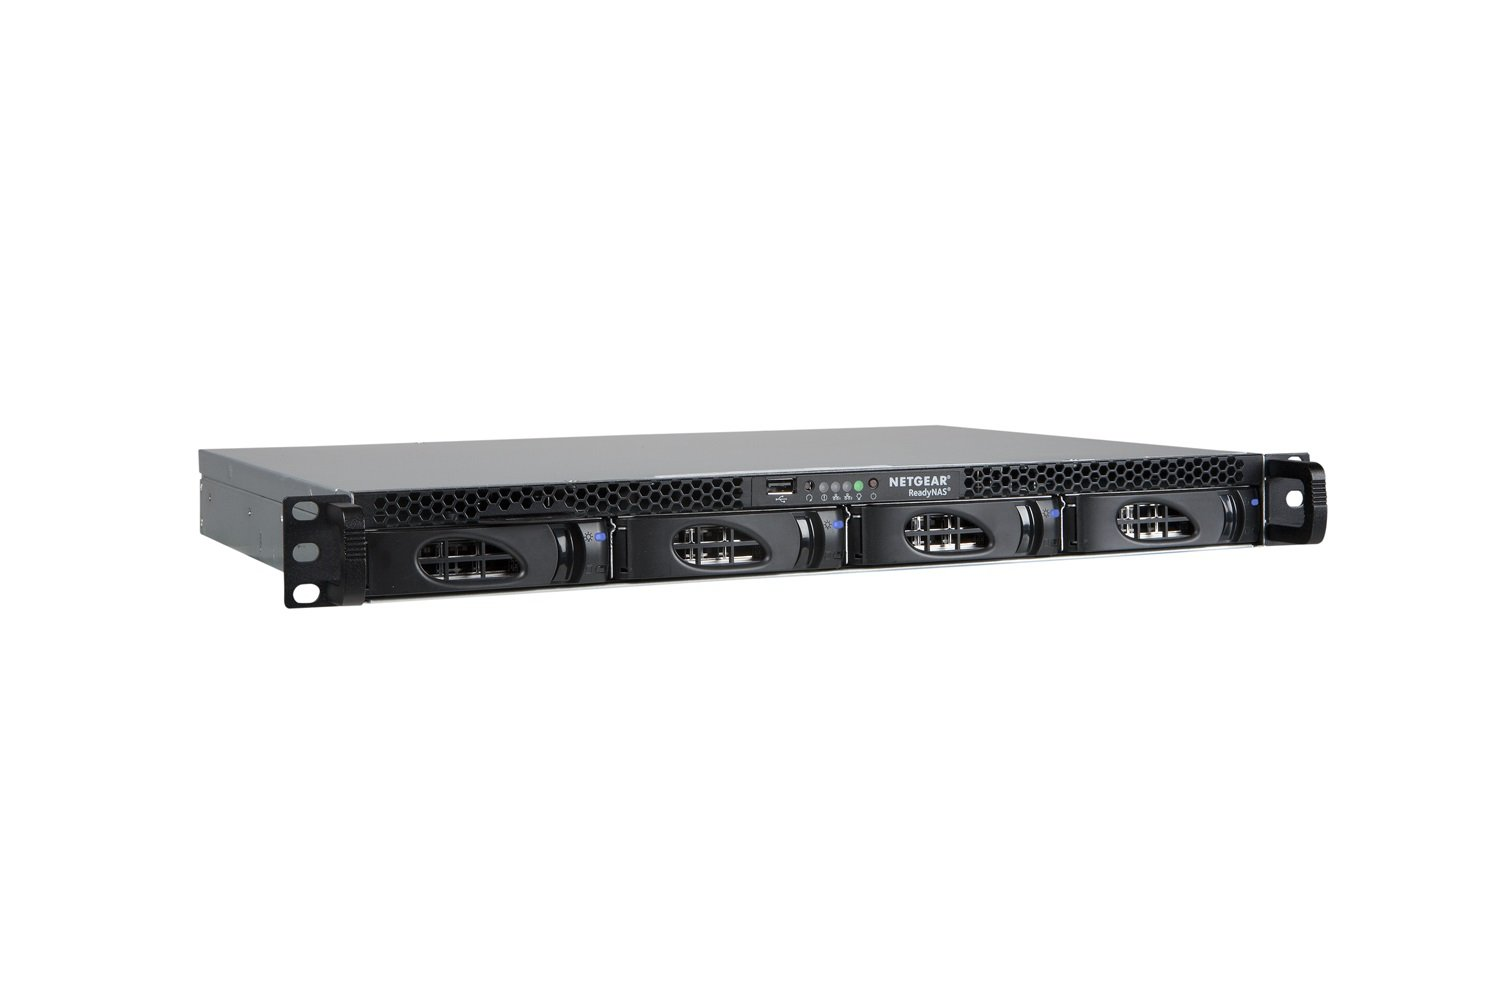 ReadyNAS 2304 1U 4Bay 2TB LAN Rack